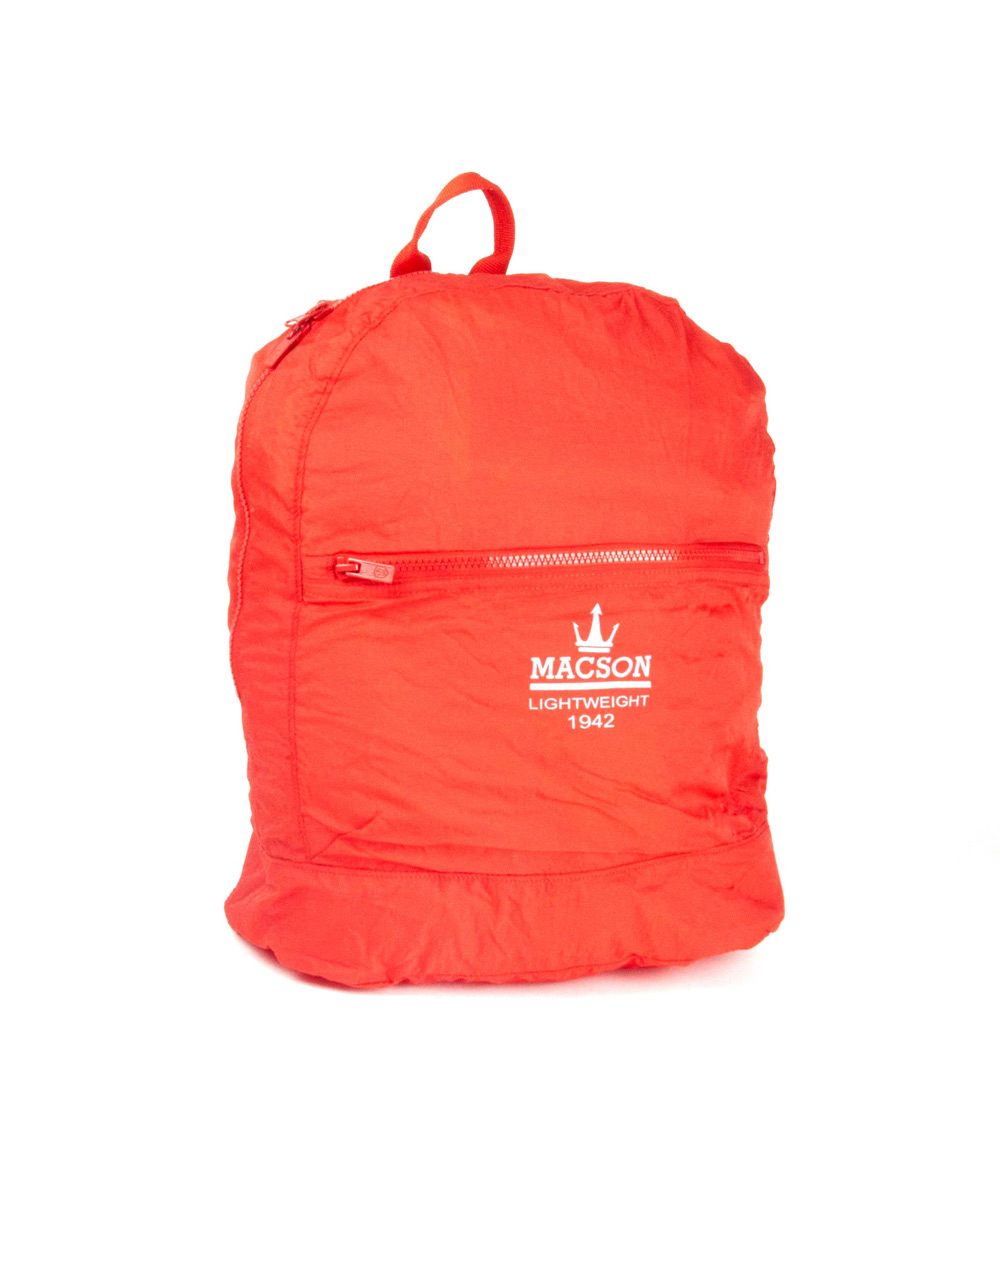 Orange sport backpack